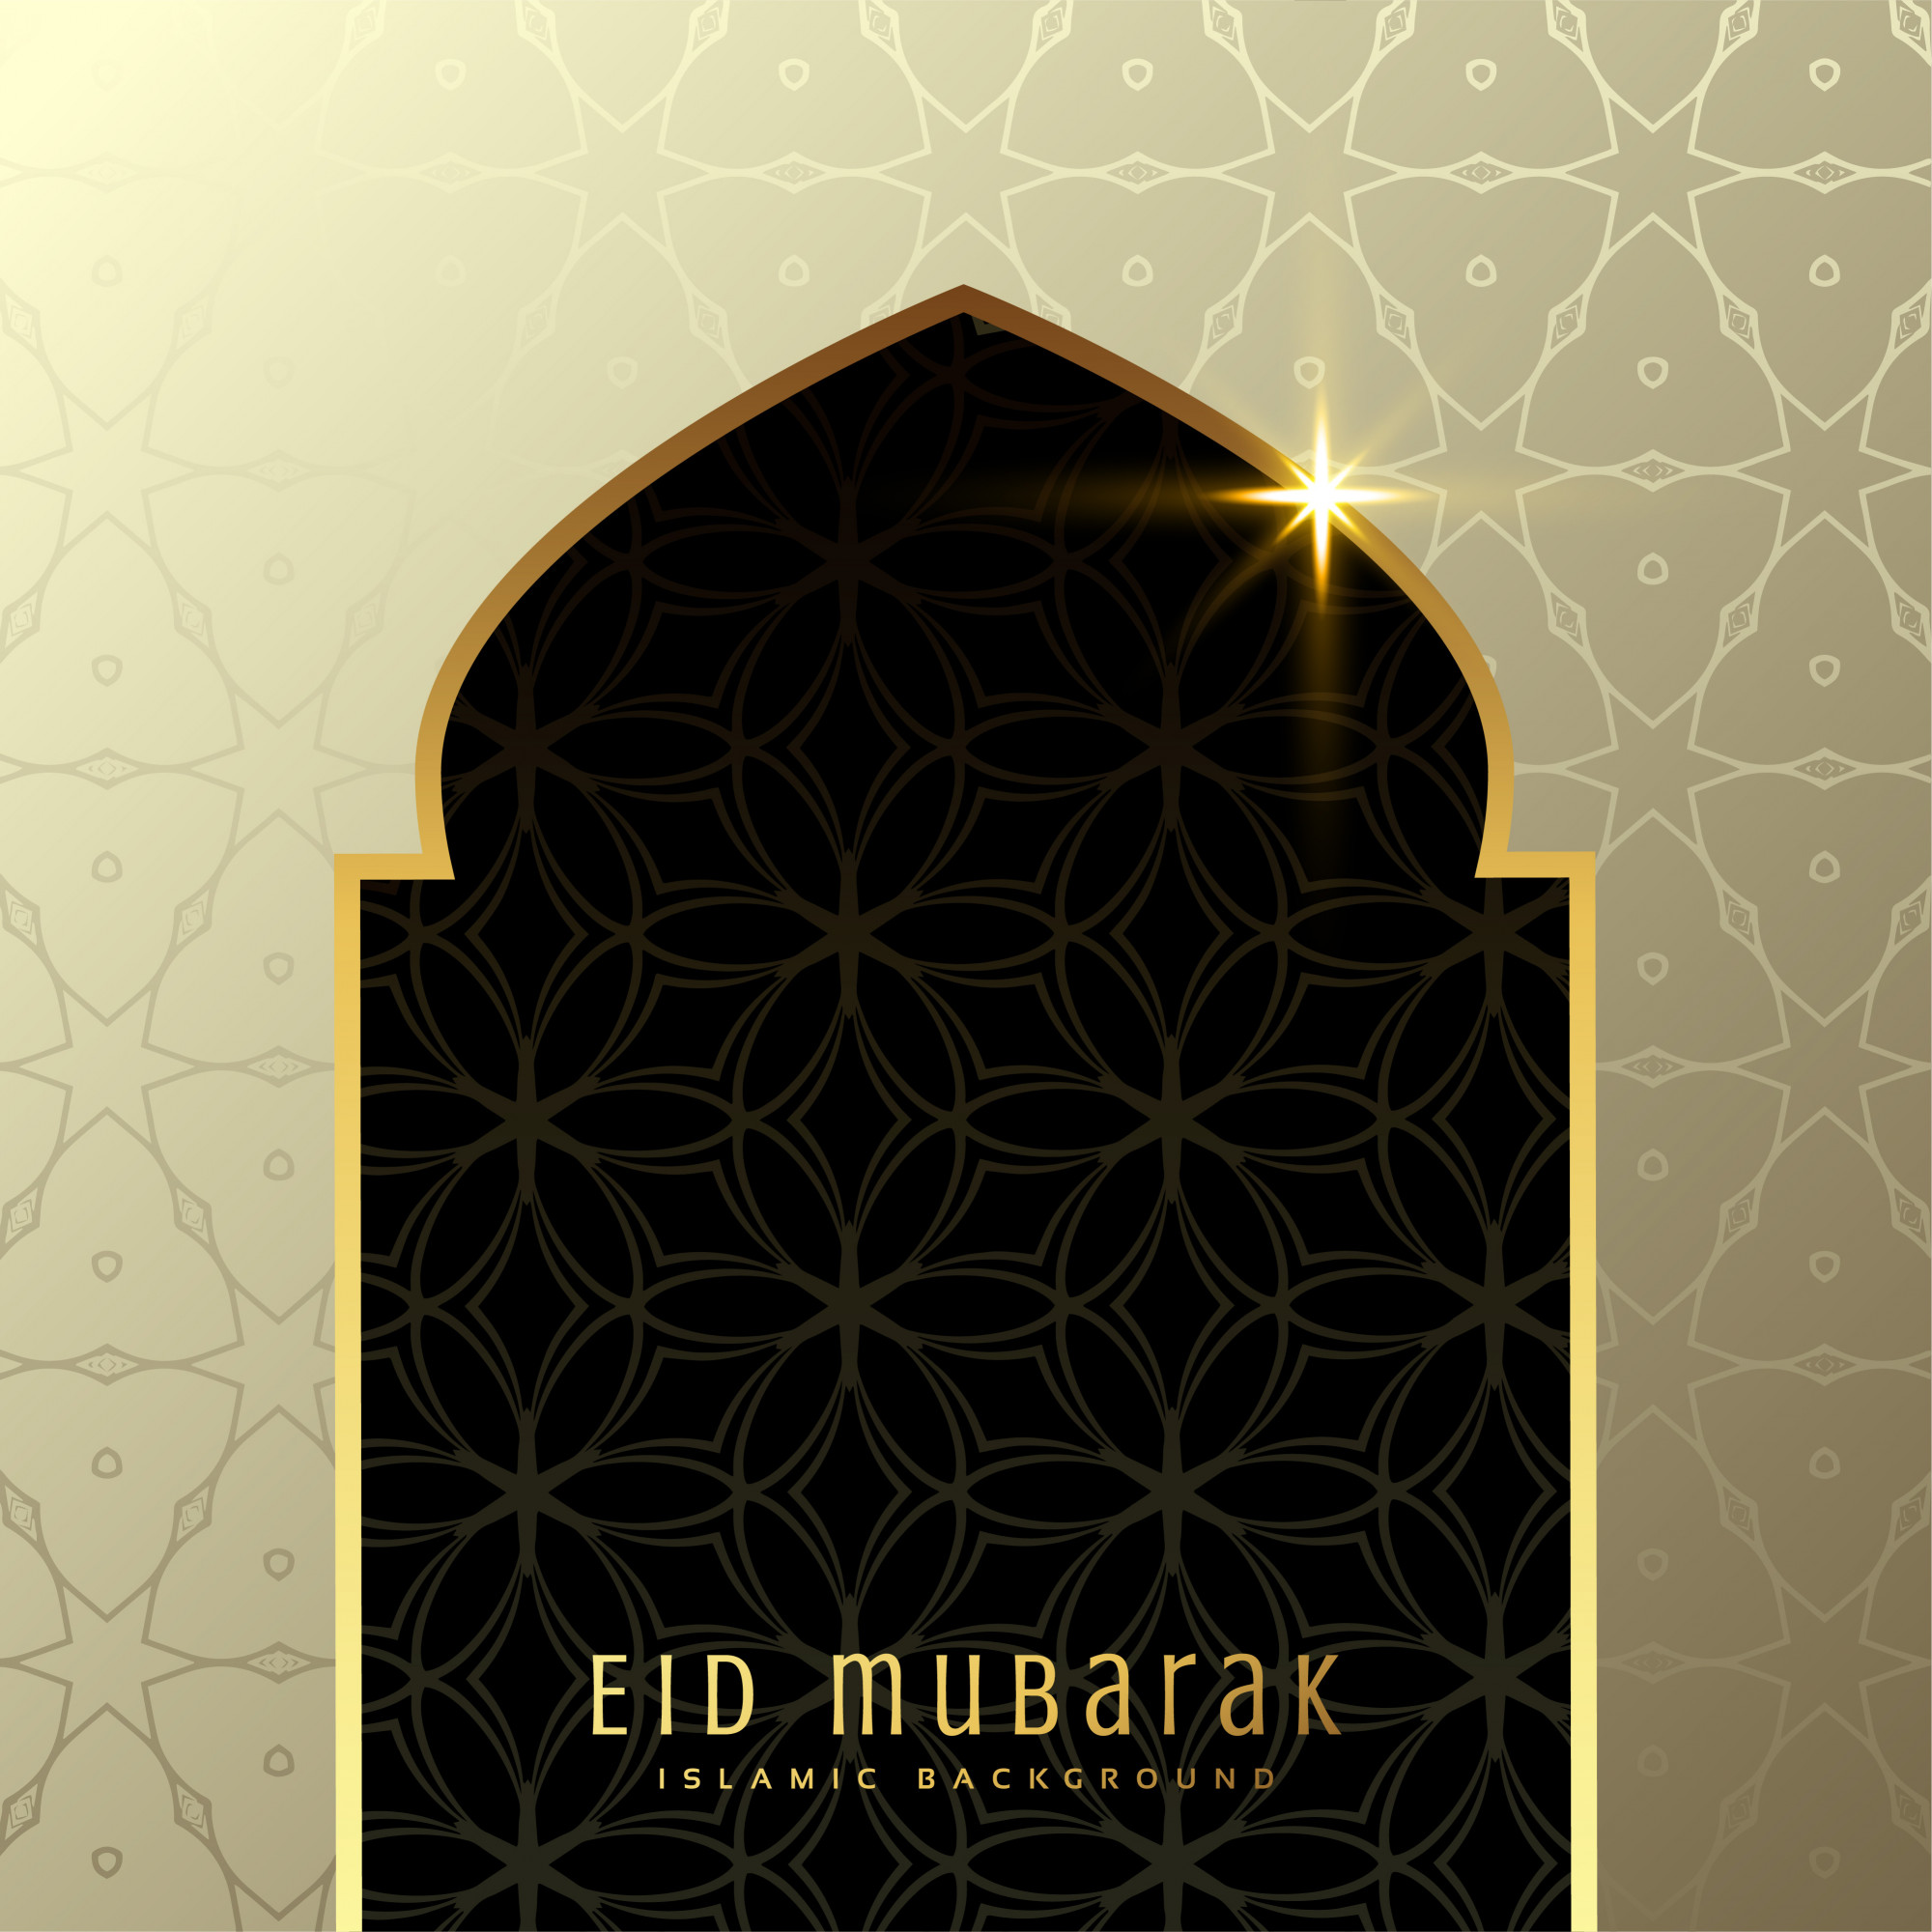 Eid mubarak greeting with mosque door in premium style